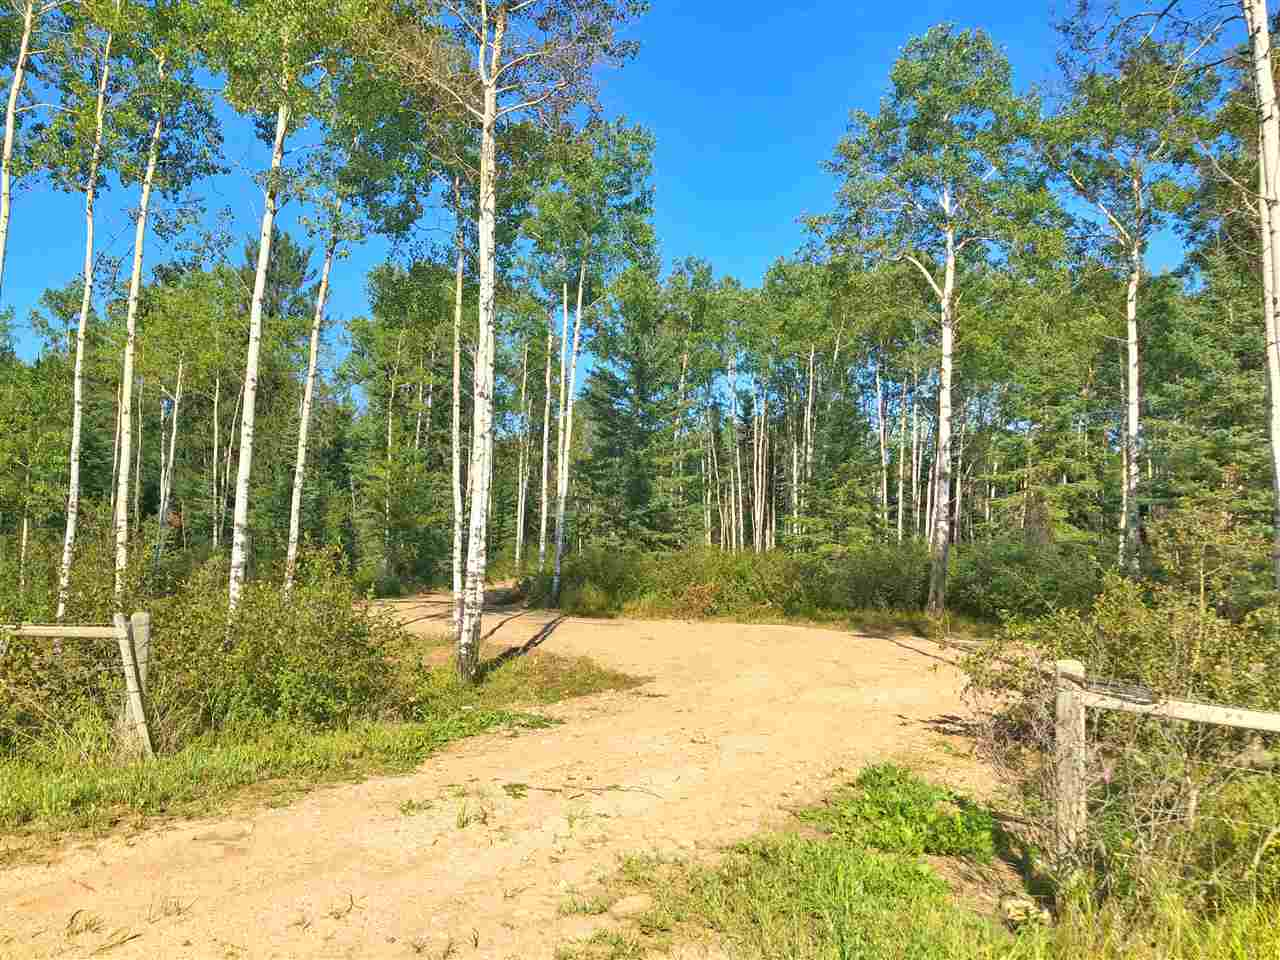 4.99 acres West-Hwy 55! Centrally located 5 minutes to Cold Lake you will find this perfect private oasis.   Enter the approach that leads you into a cleared area that is completely surrounded by poplar, spruce and jack pine.  Expand the clearing for more space or keep it as dense as you want with trees.  Don't step on the wild blueberry bushes covering the ground everywhere!  Power is on the property with gas at the property line.  Maximum privacy with lots of space and did I mention - Location Location Location! If you have been waiting for that perfect acreage HERE IT IS!